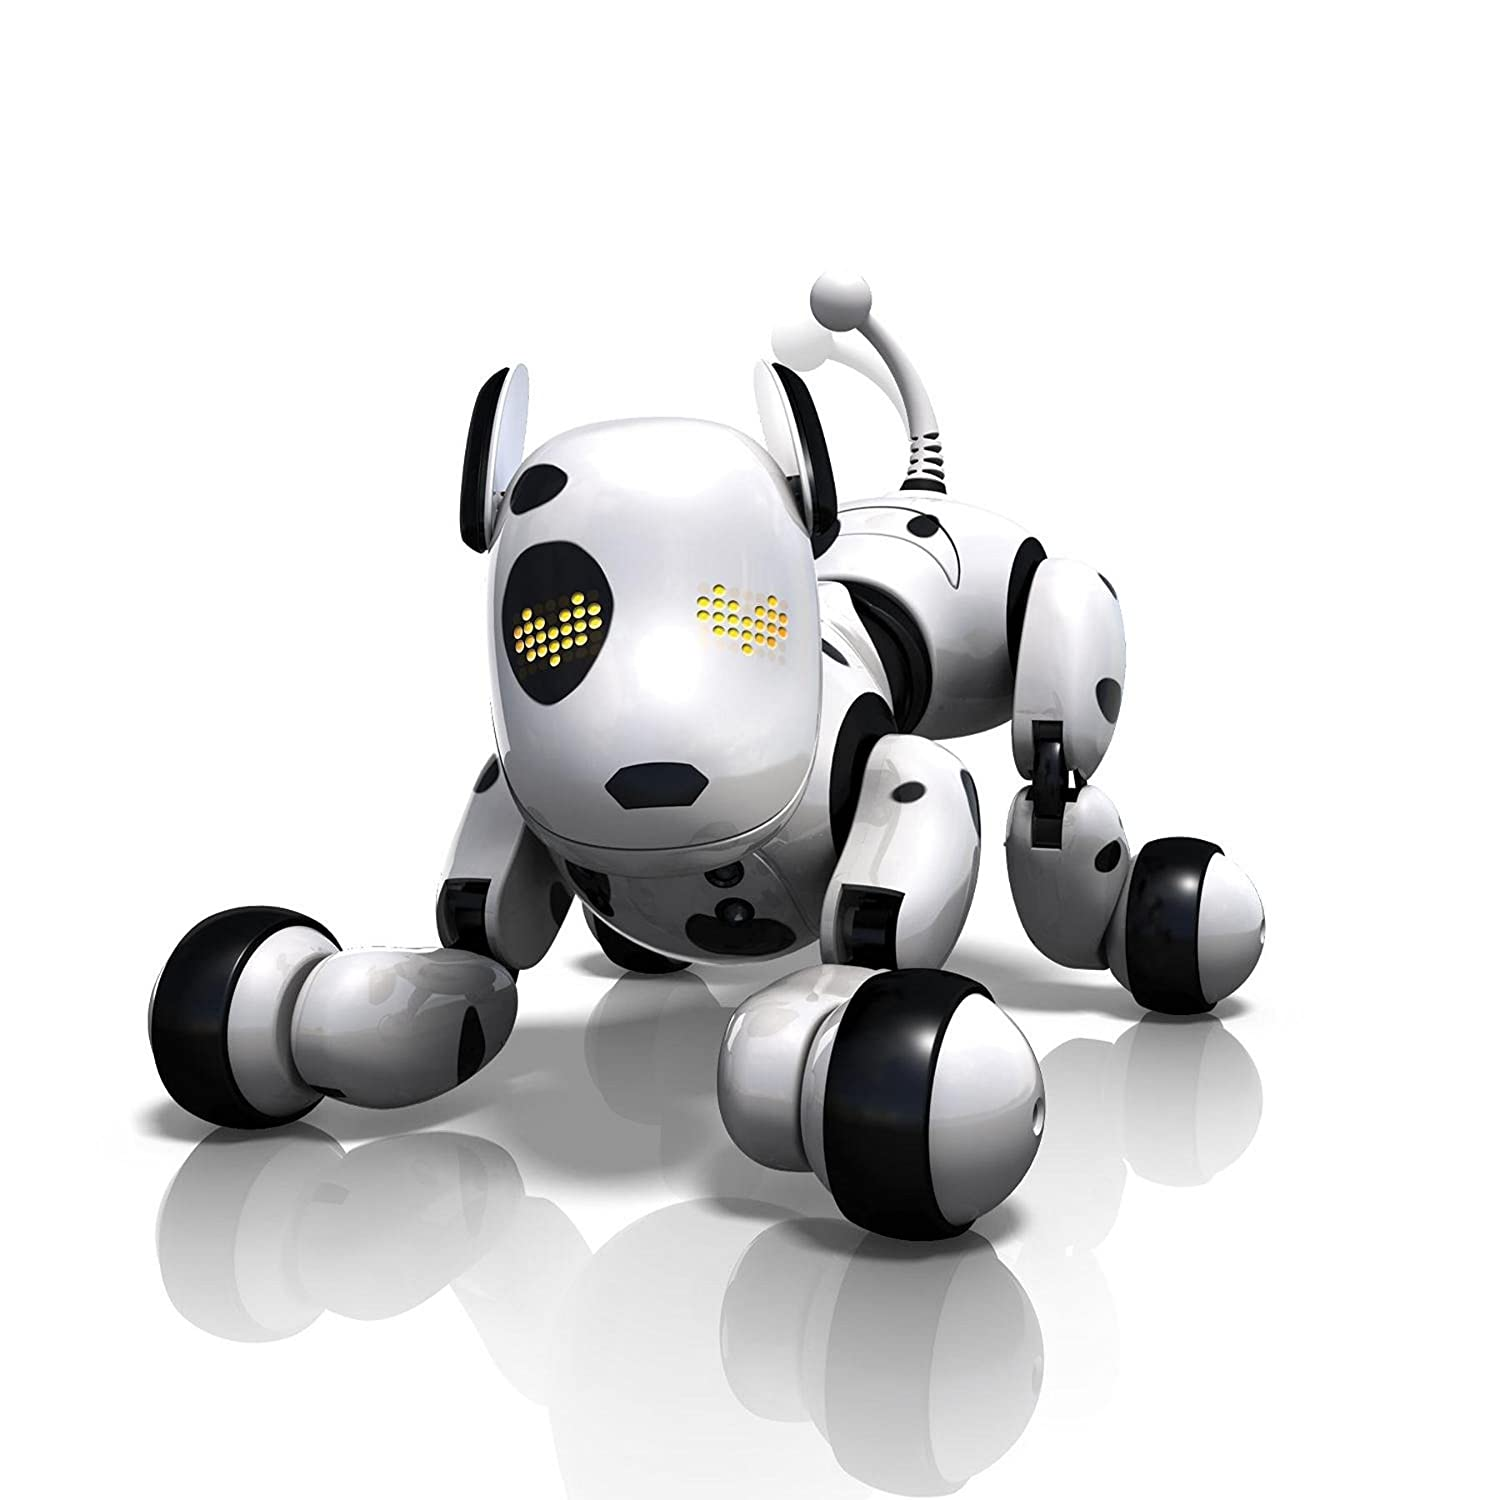 Dad of Divas' Reviews: Product Review - Zoomer The Robot Dog